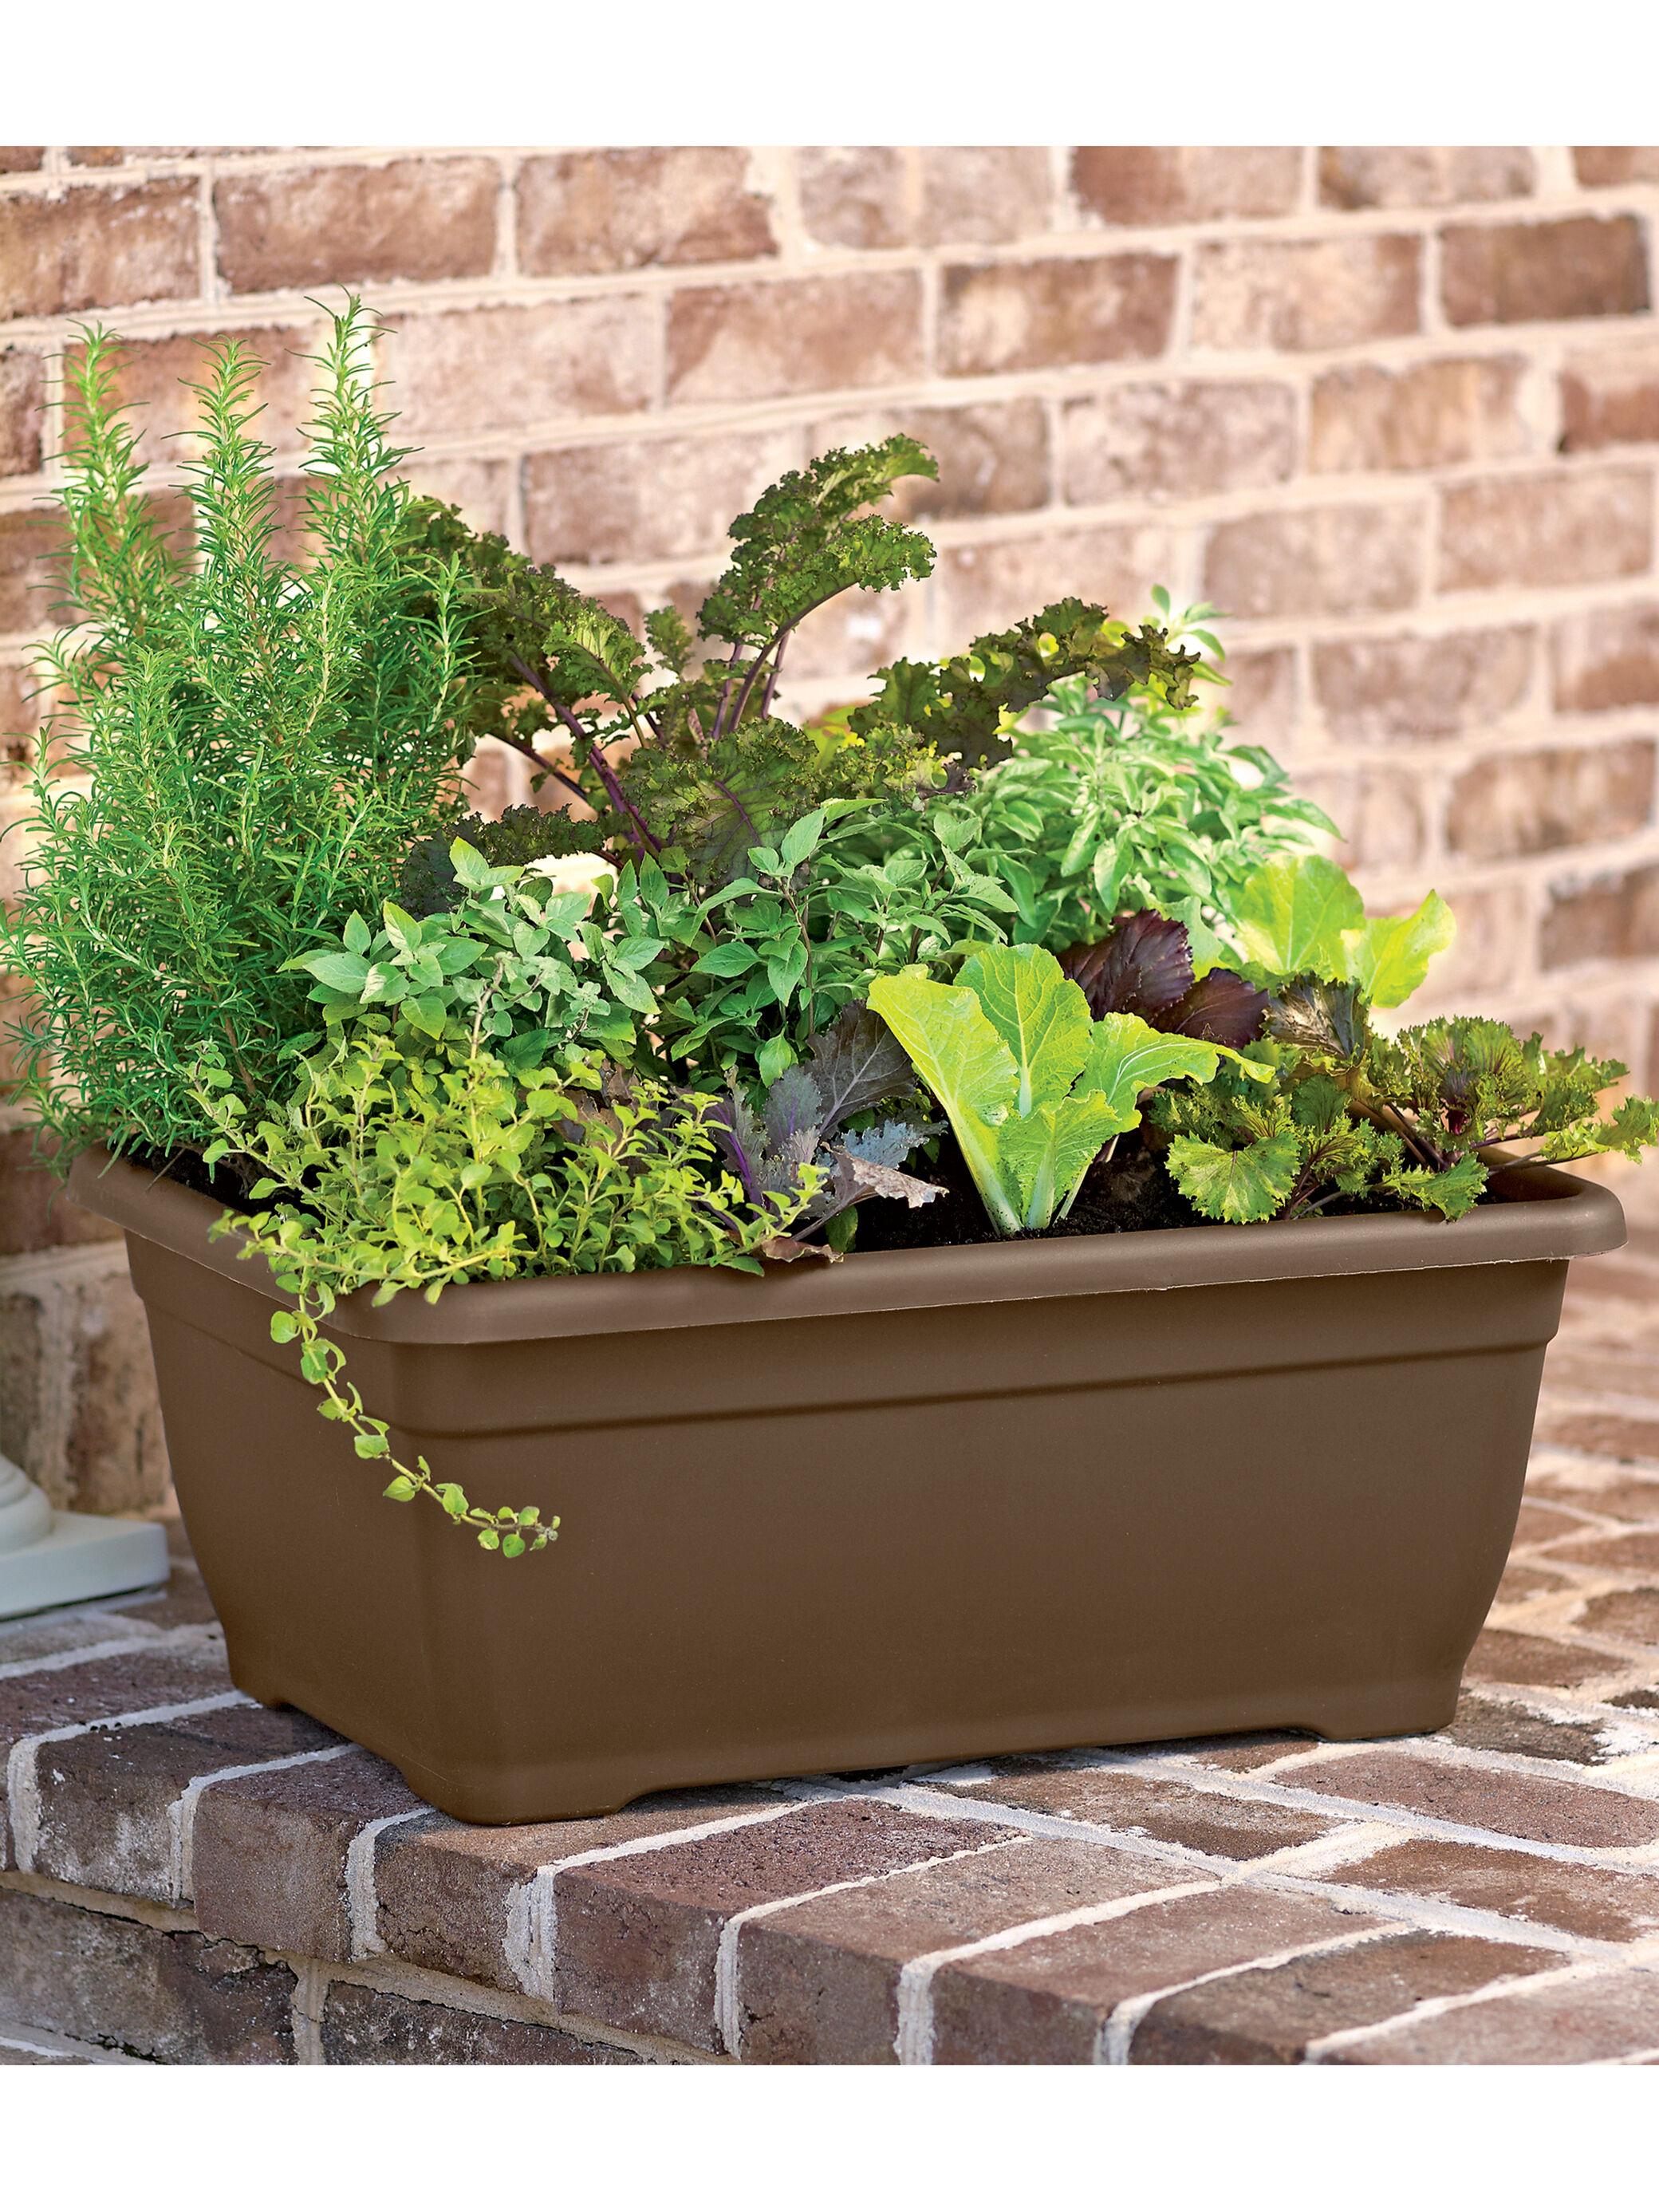 design concrete planter large shallow interior designs bowl ideas to garden